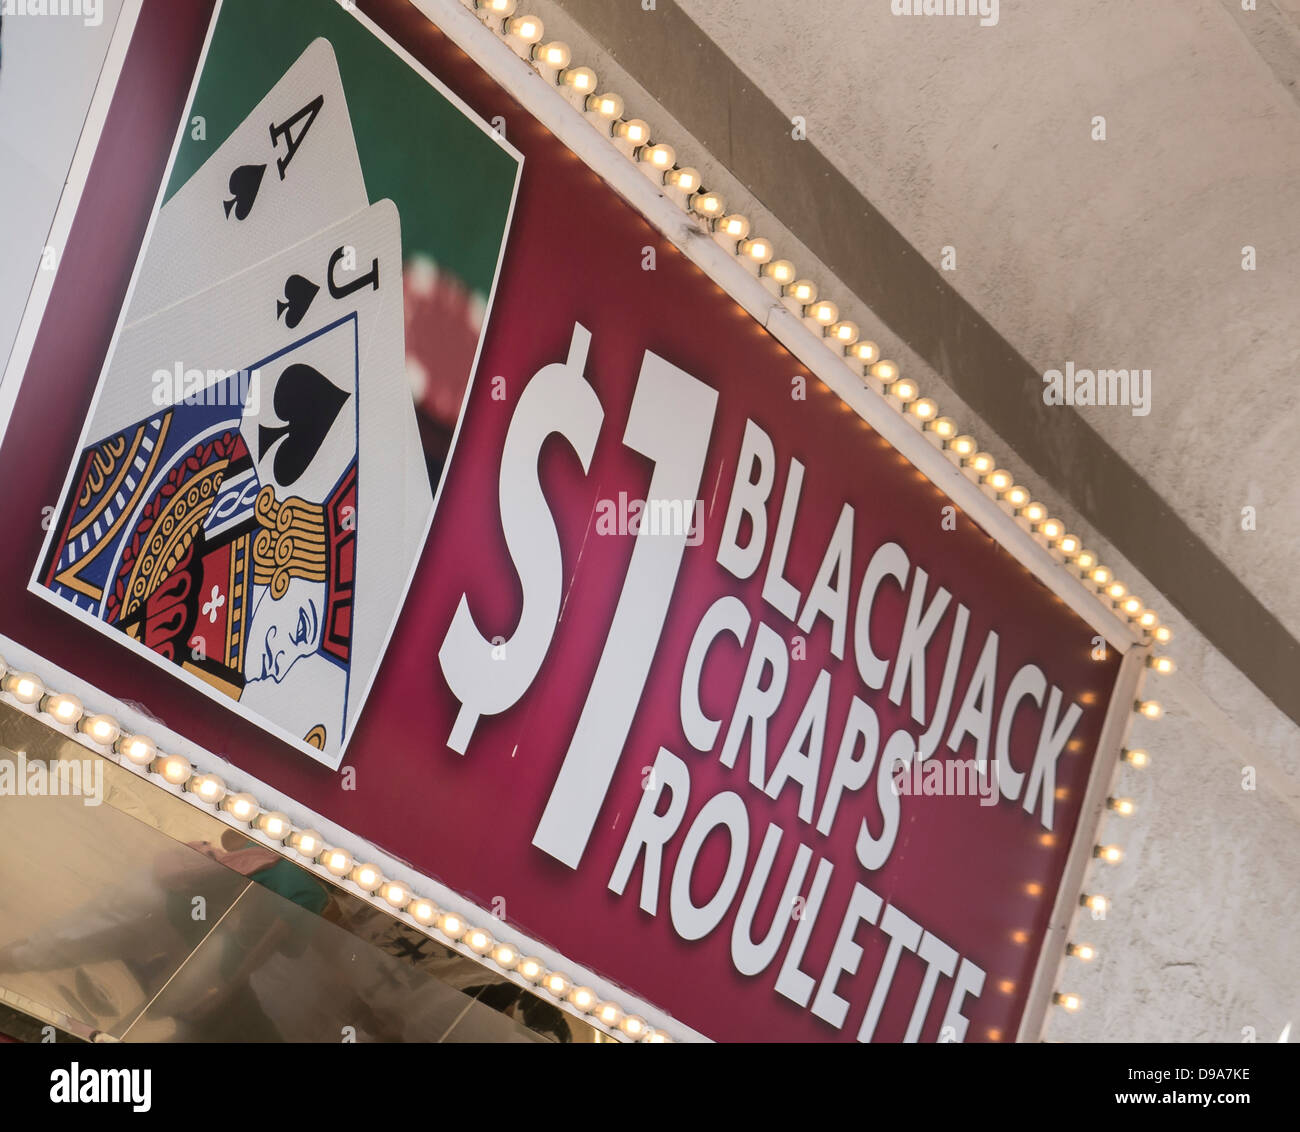 Sign advertising Blackjack Craps Roulette in Las vegas - Stock Image